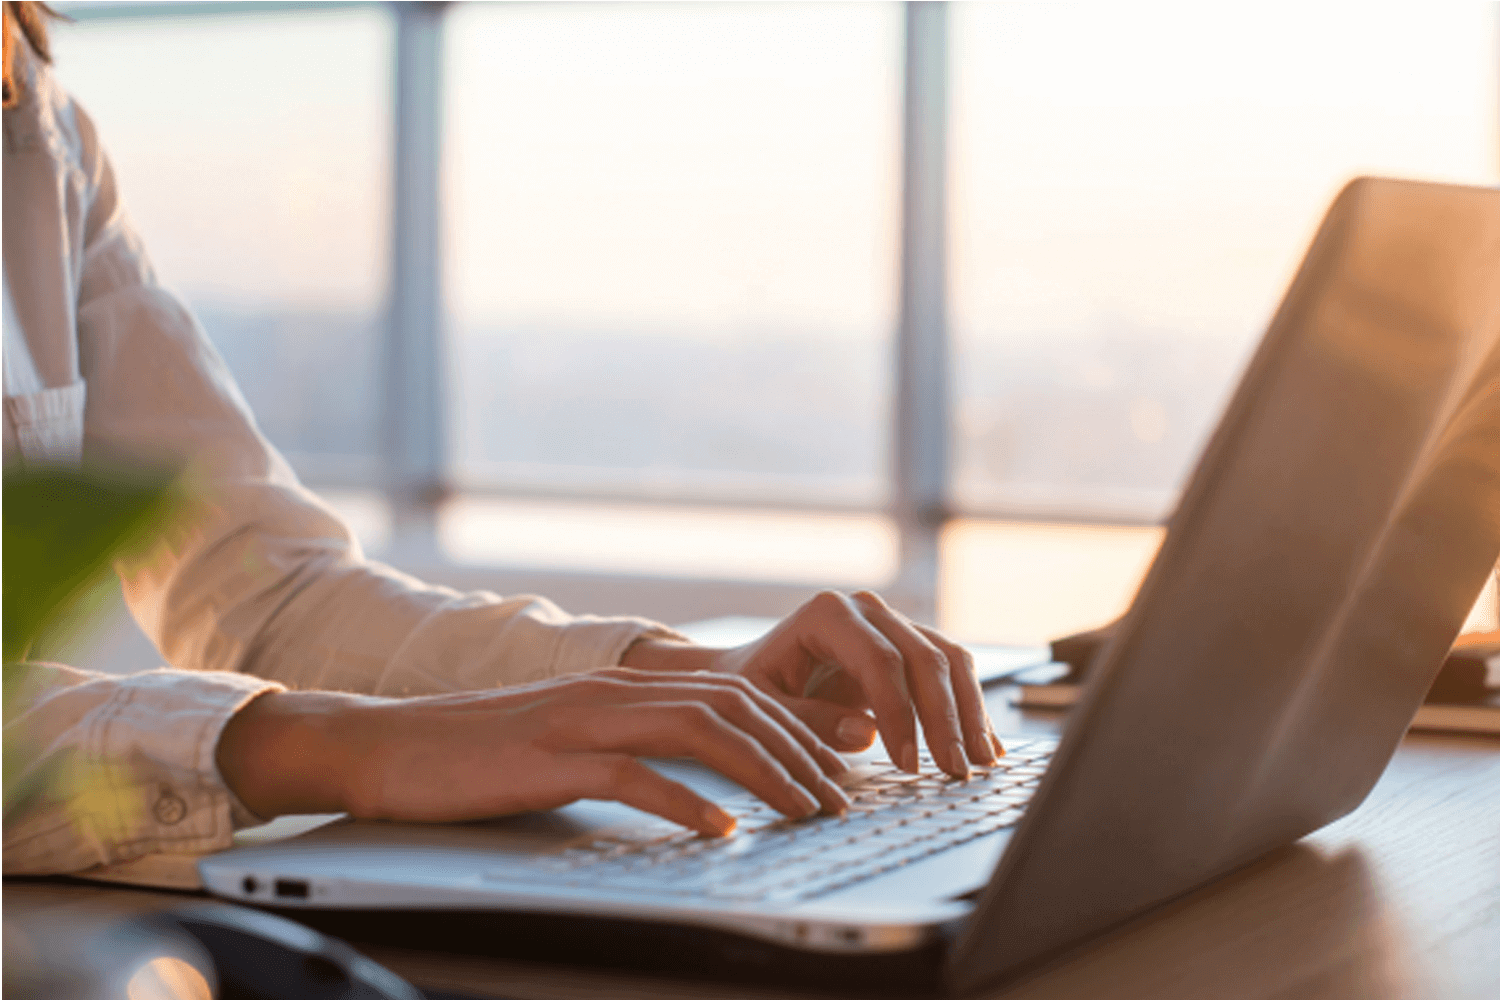 Leaders struggle with telecommuting workers.